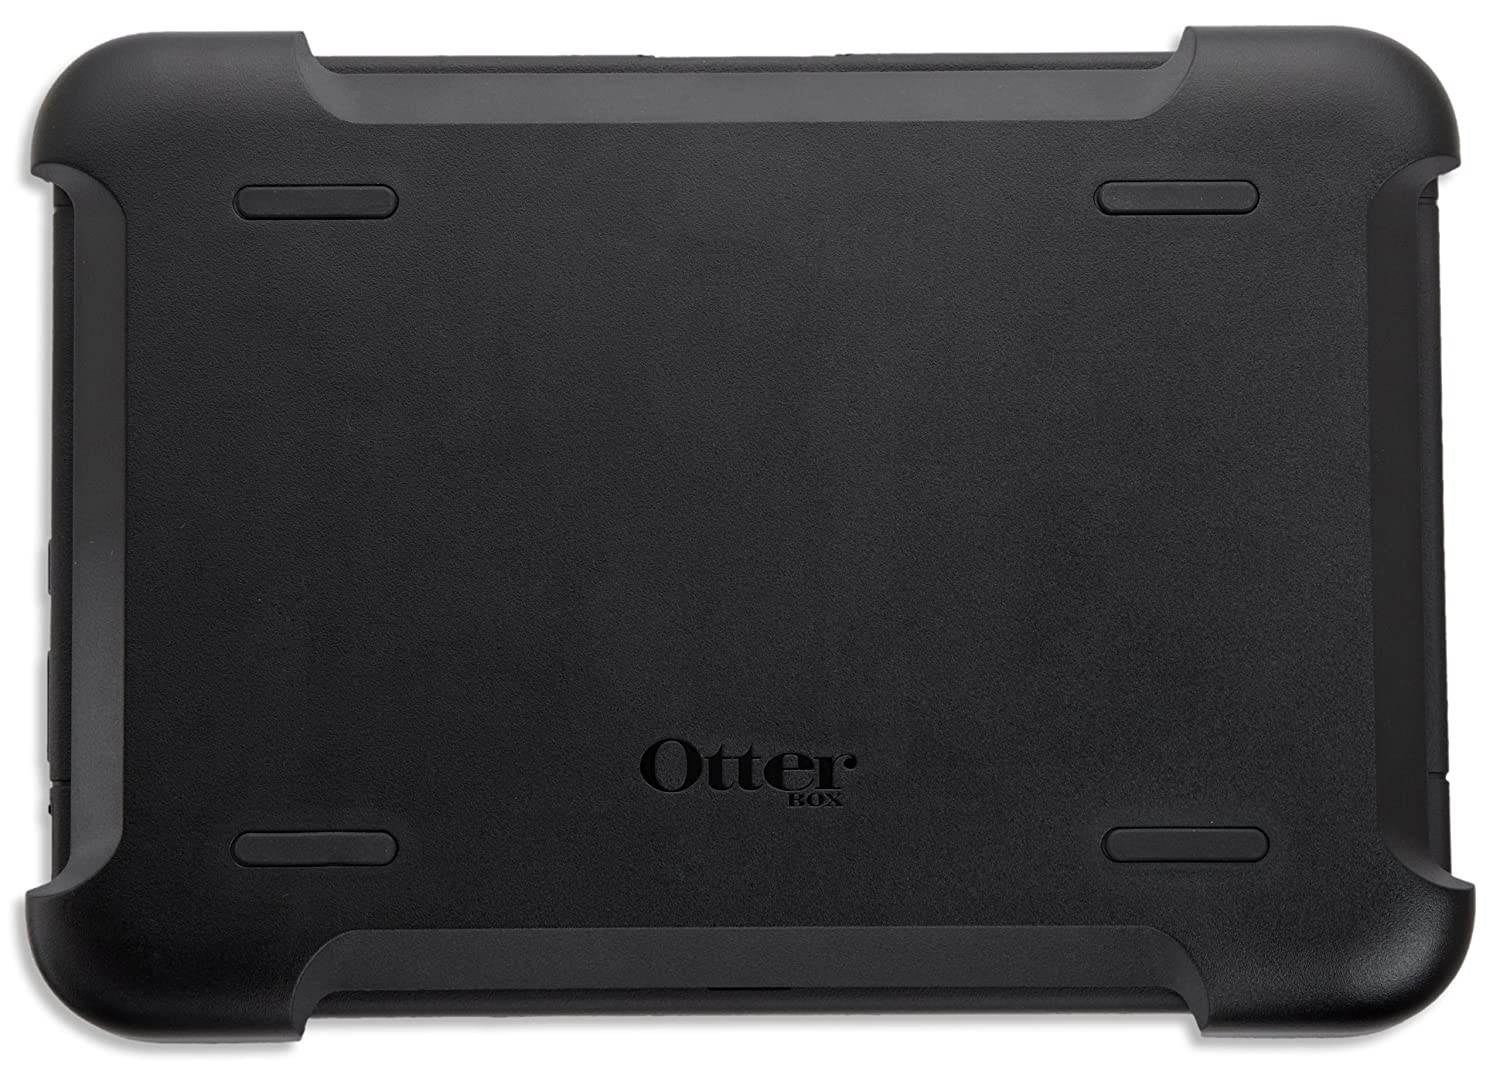 Black OtterBox Defender Series Protective Case for Kindle Fire HD 8.9 with built-in screen protection